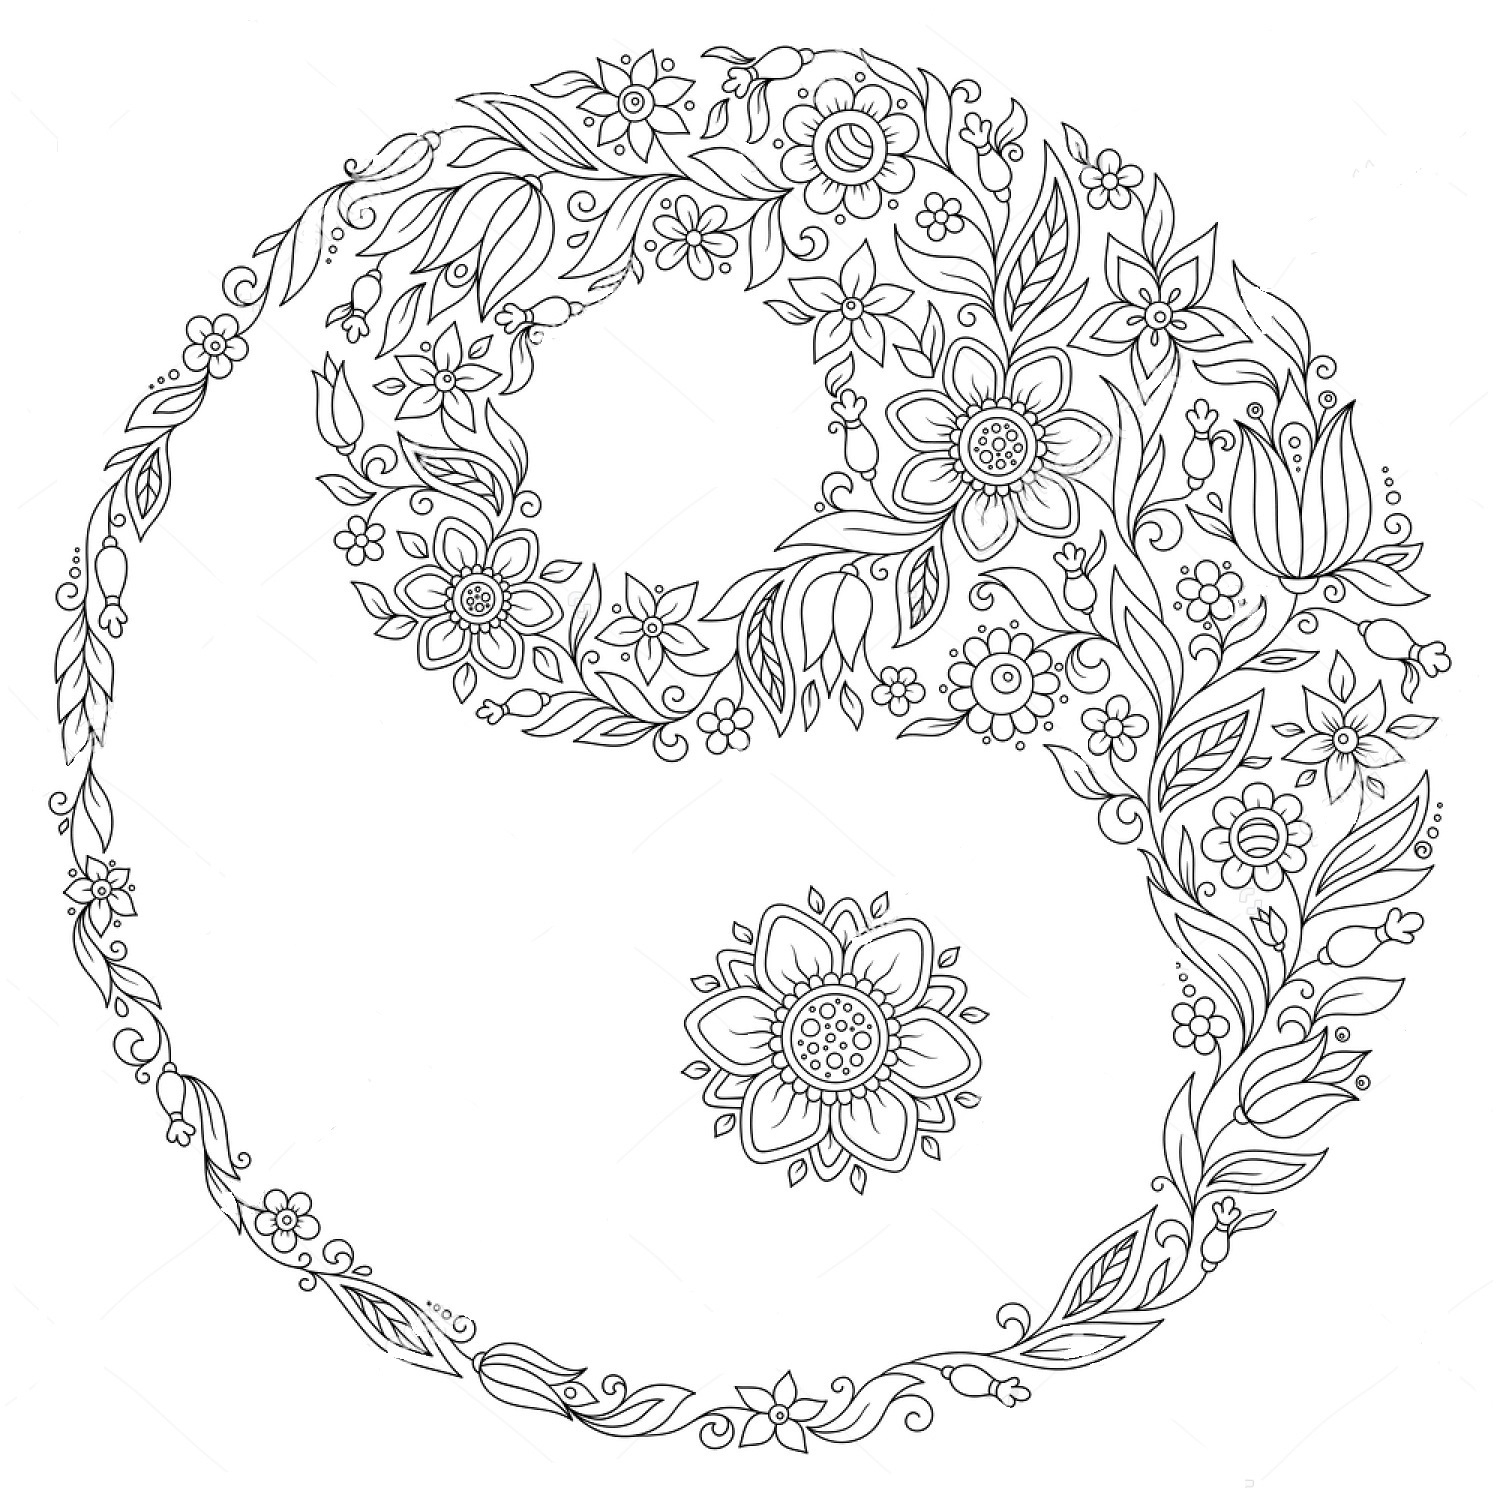 1500x1488 Best Of Yin Yang Mandala Coloring Pages Design Printable